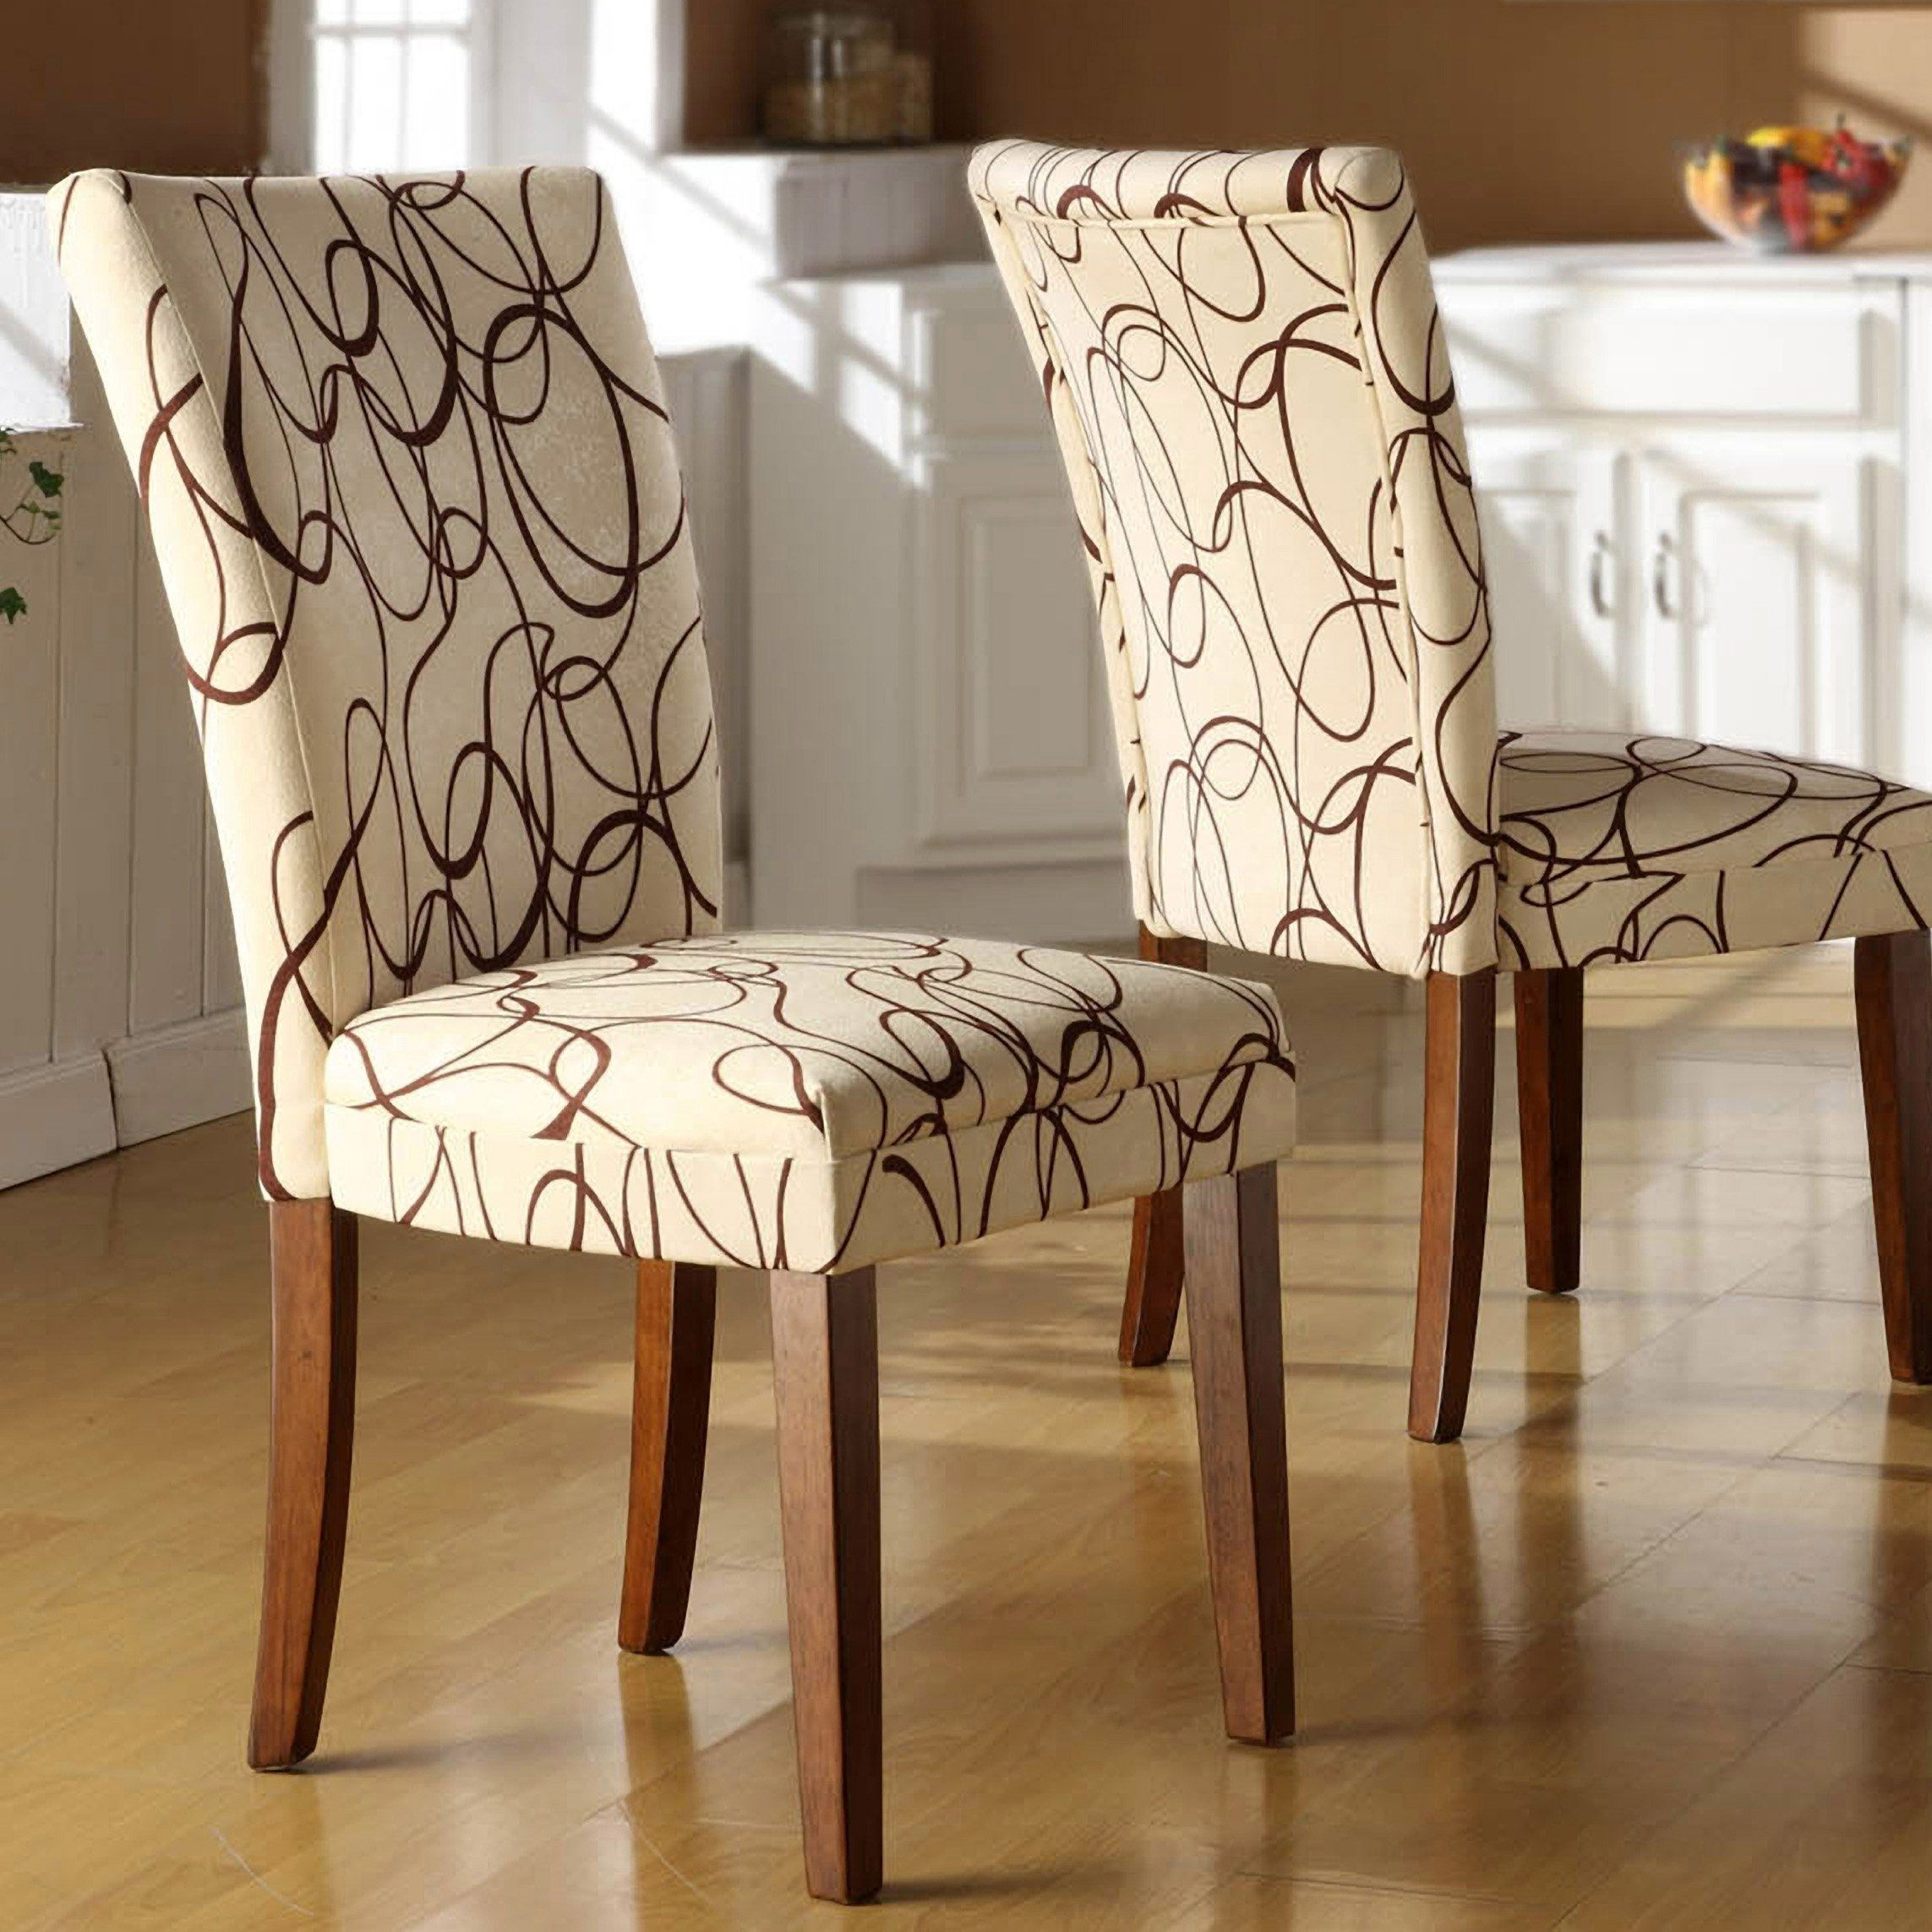 Parson Dining Room Chairs Chairs Fabric Dining Room Chairs